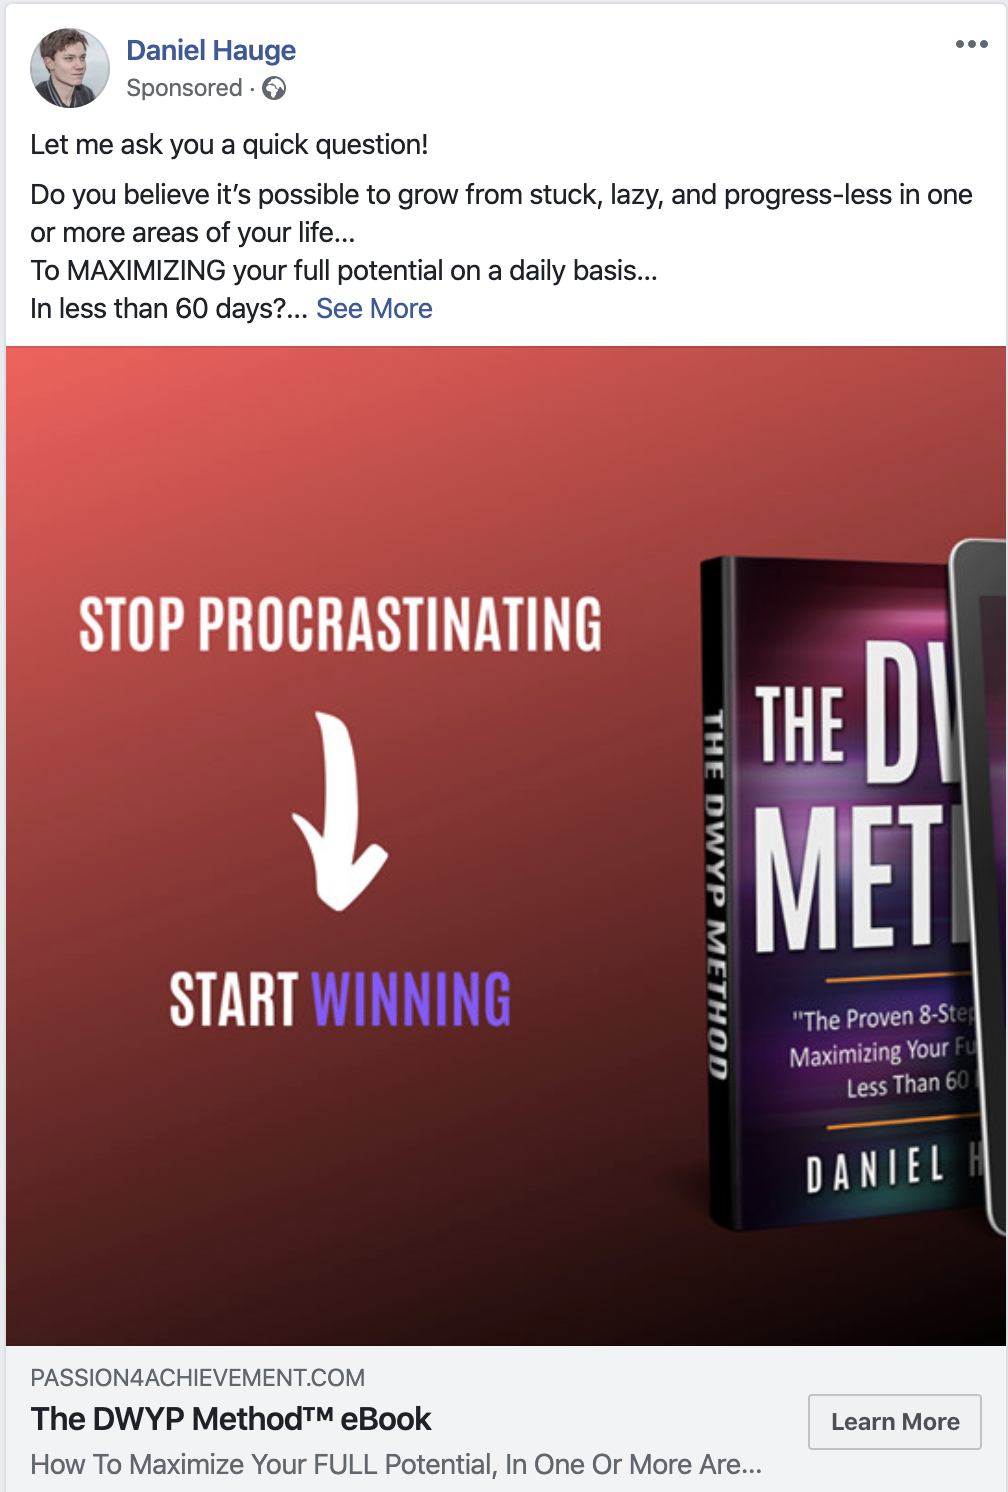 Example of a Facebook lead ads campaign promoting an ebook.